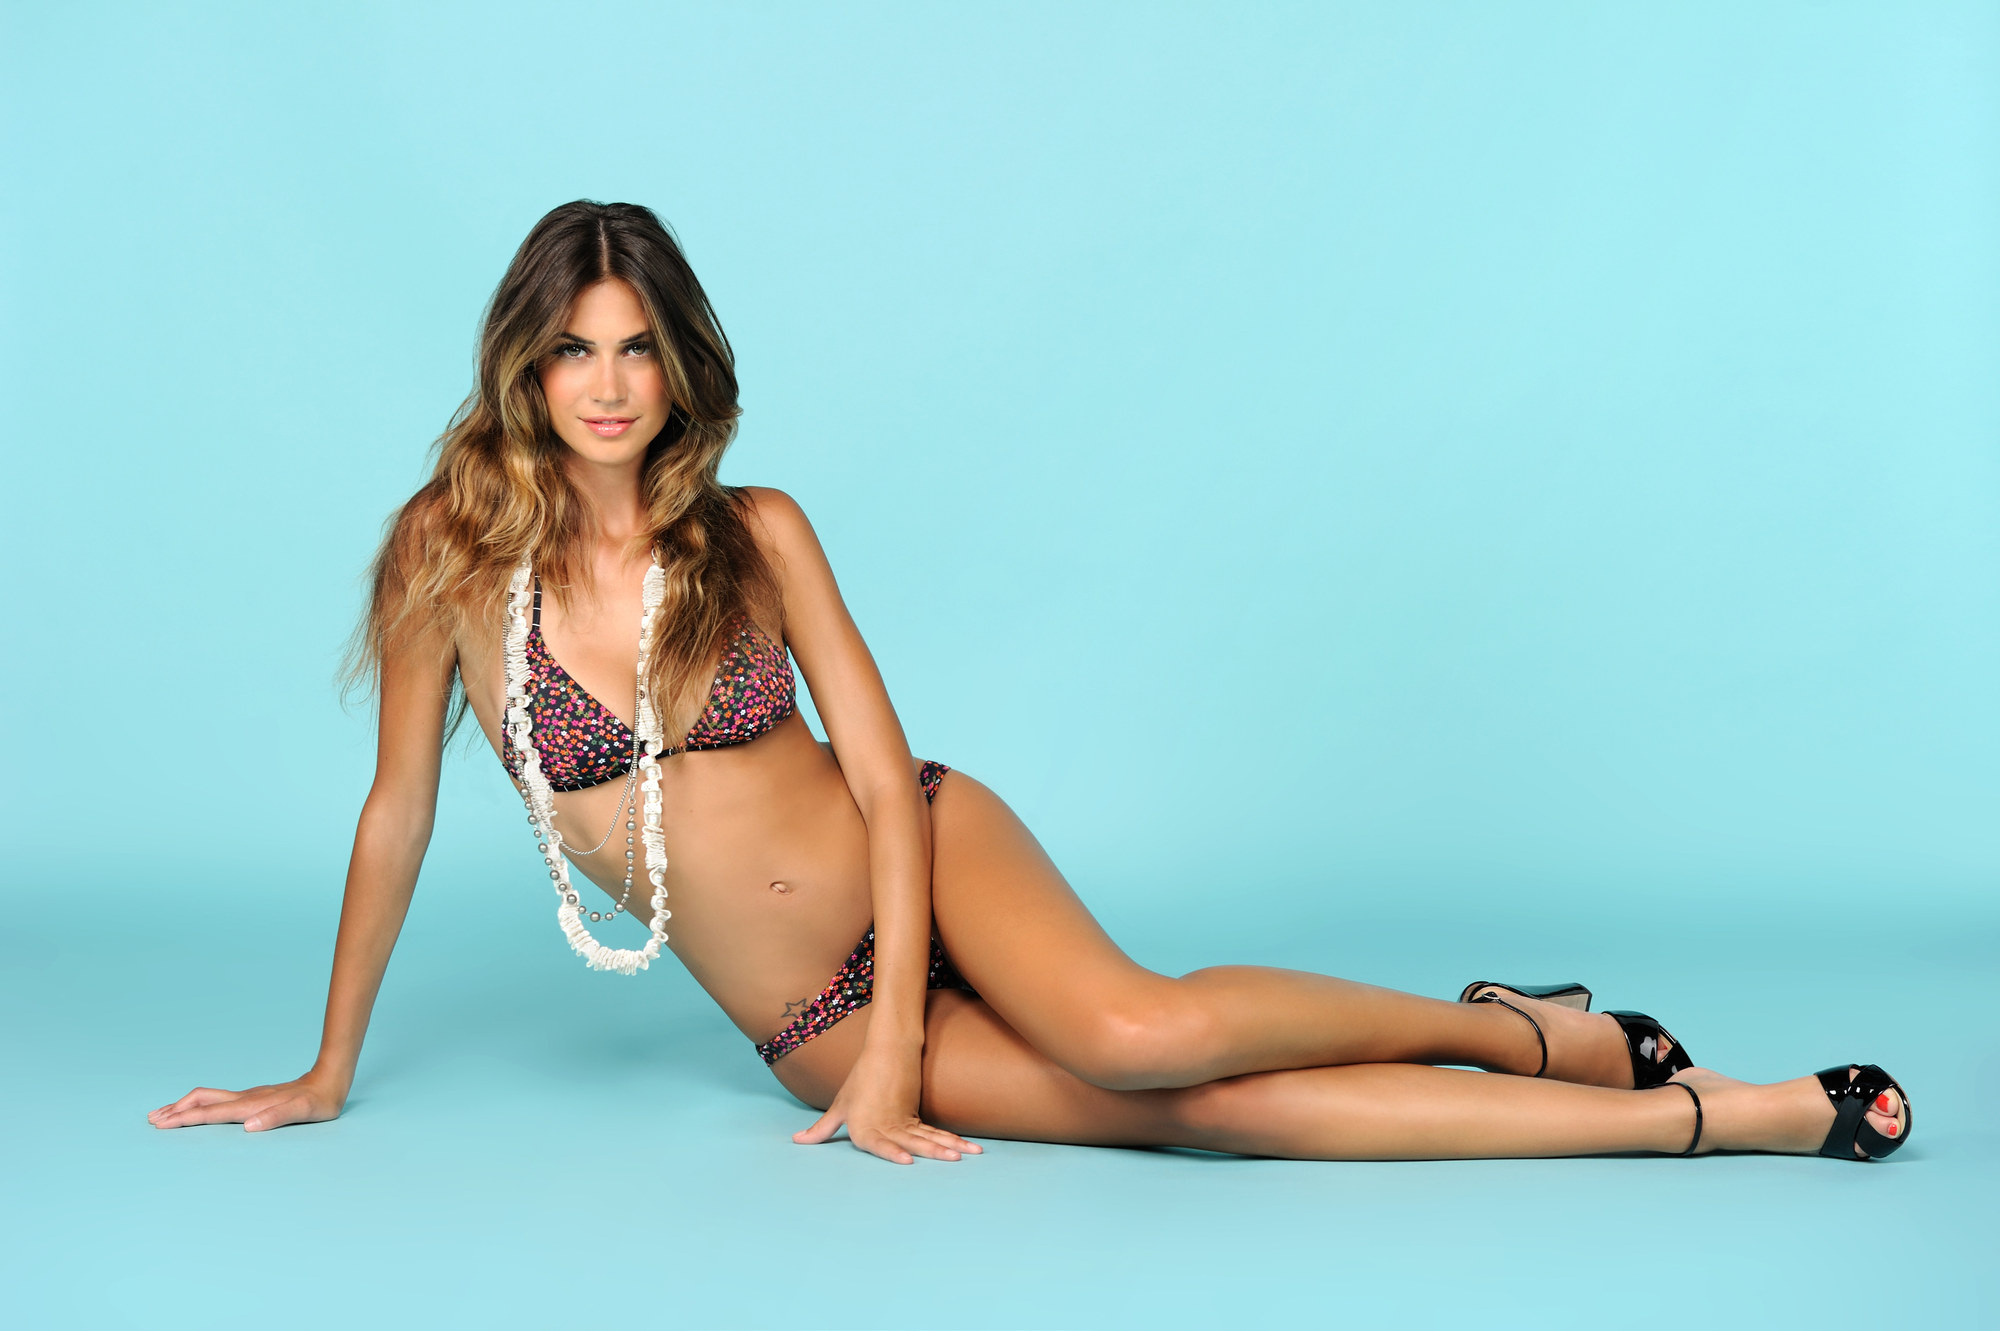 Melissa satta wallpapers images photos pictures backgrounds for Belle image hd